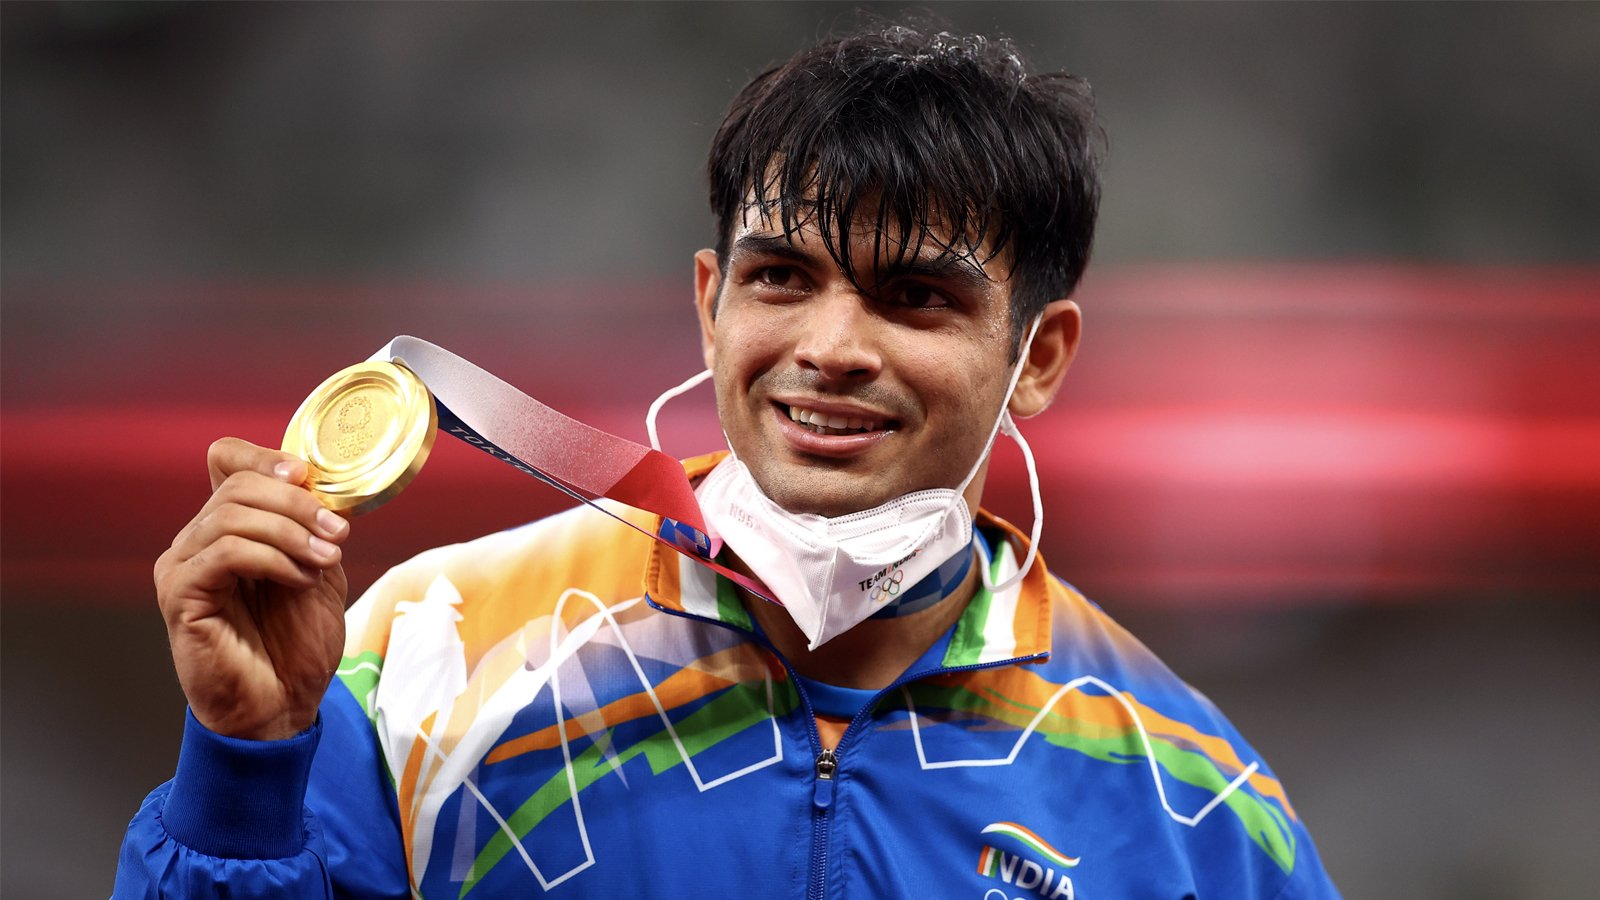 Neeraj Chopra and other members of the armed forces participating in the Tokyo Olympics will be honored by Rajnath Singh